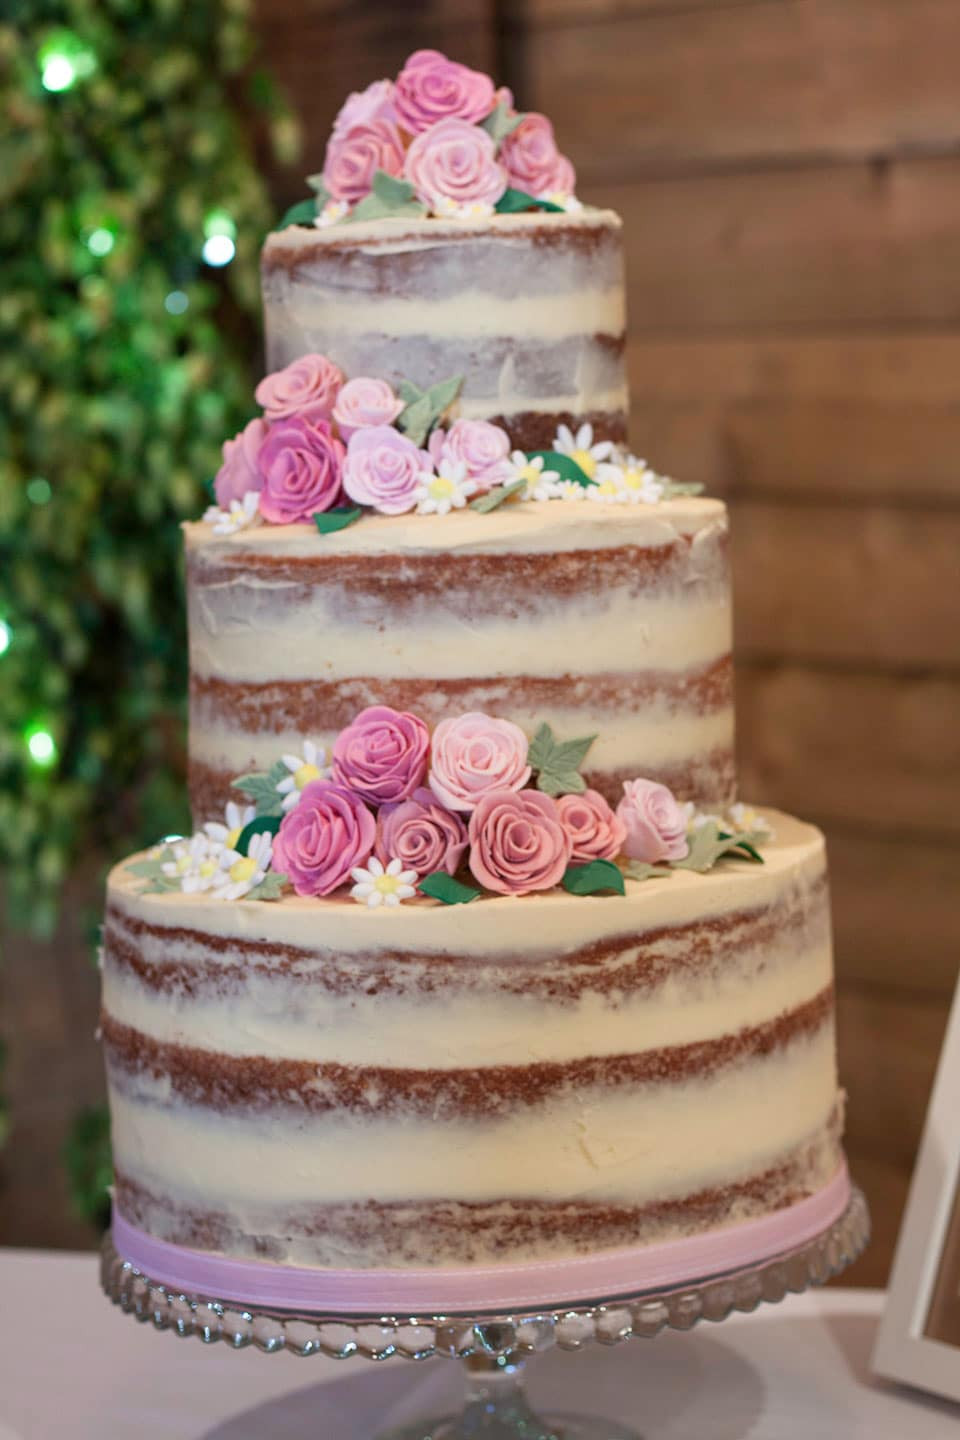 Make Wedding Cakes  How to make a semi wedding cake